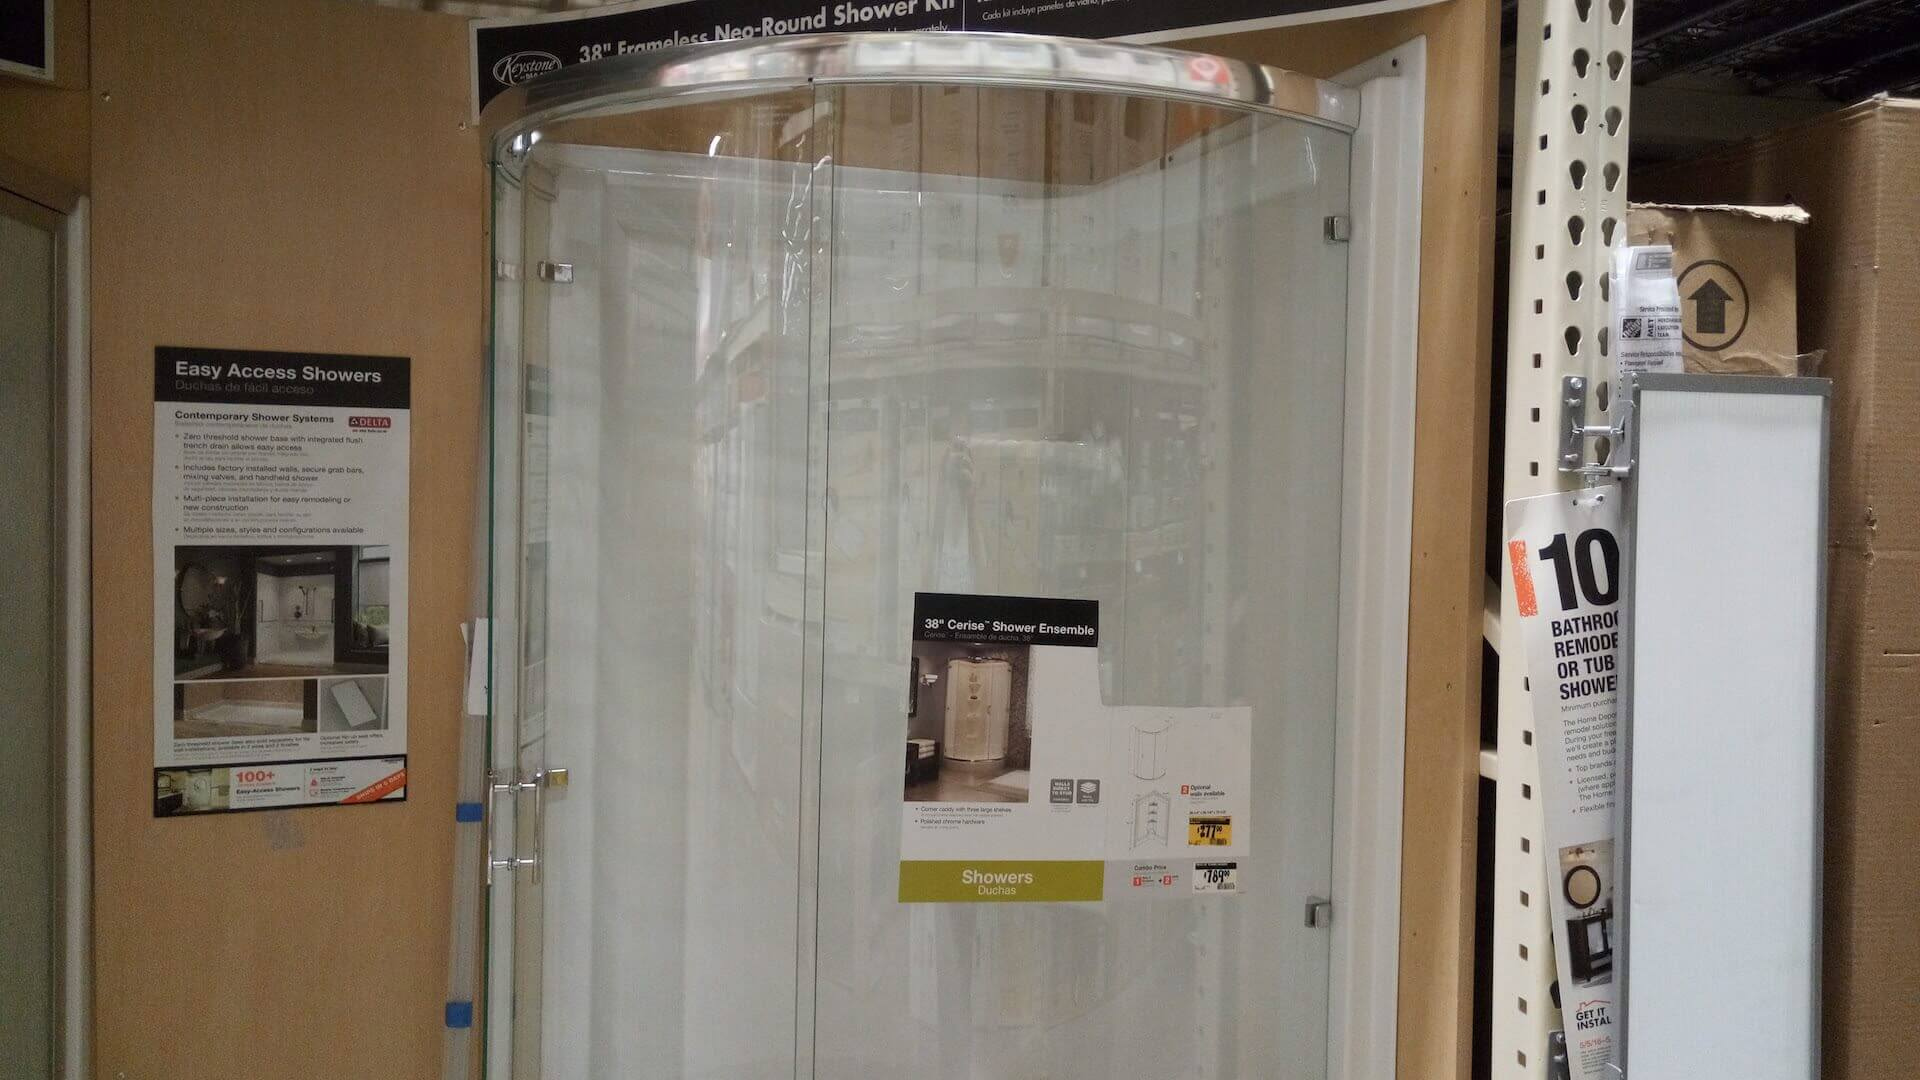 Round glass shower review 514 at home depot - Home depot bathroom tile installation cost ...